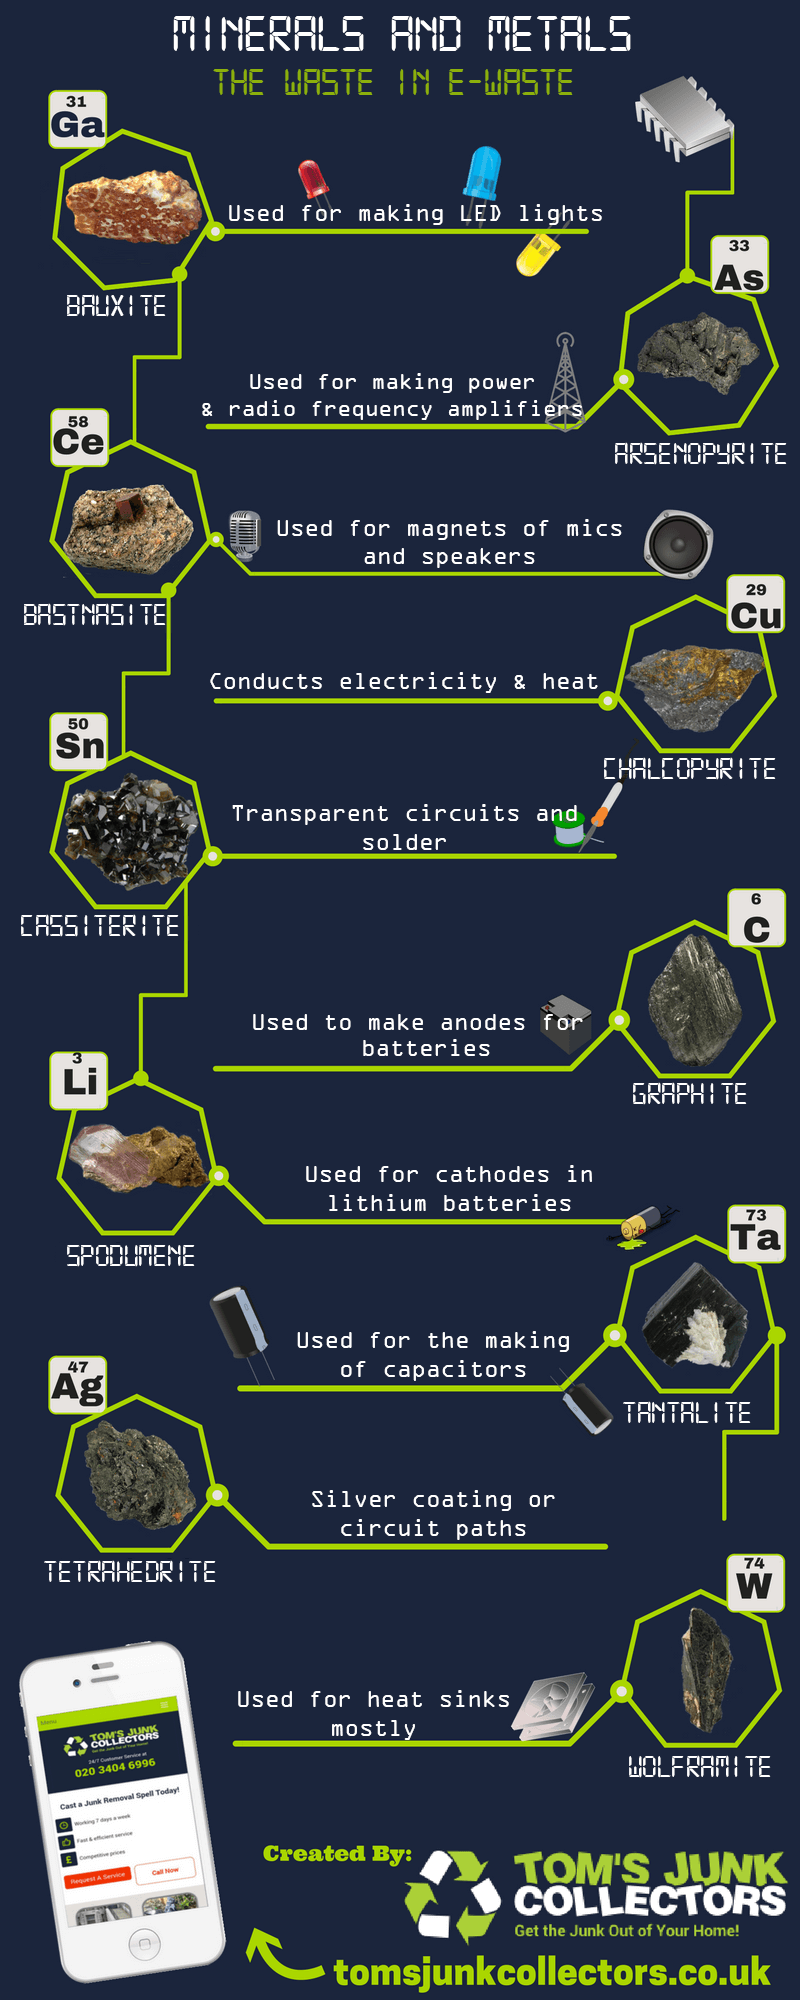 minerals-and-metals-e-waste-infographic-plaza